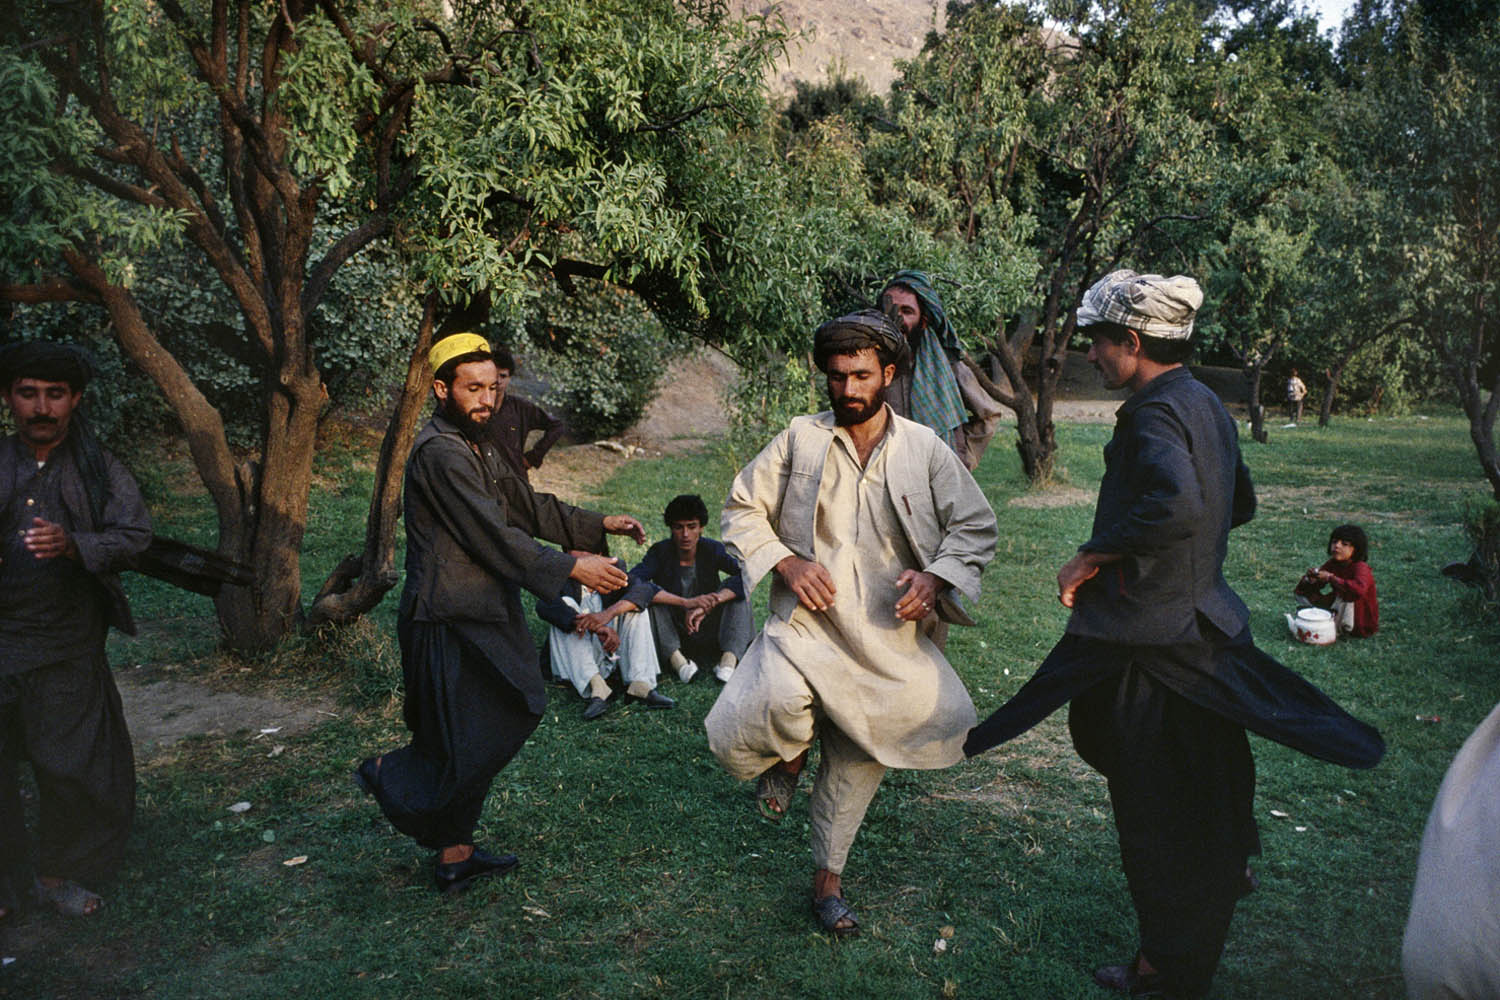 Afghan men in Kabul's Babur Gardens perform an attan dance, a traditional dance, during a Friday picnic. September, 1991